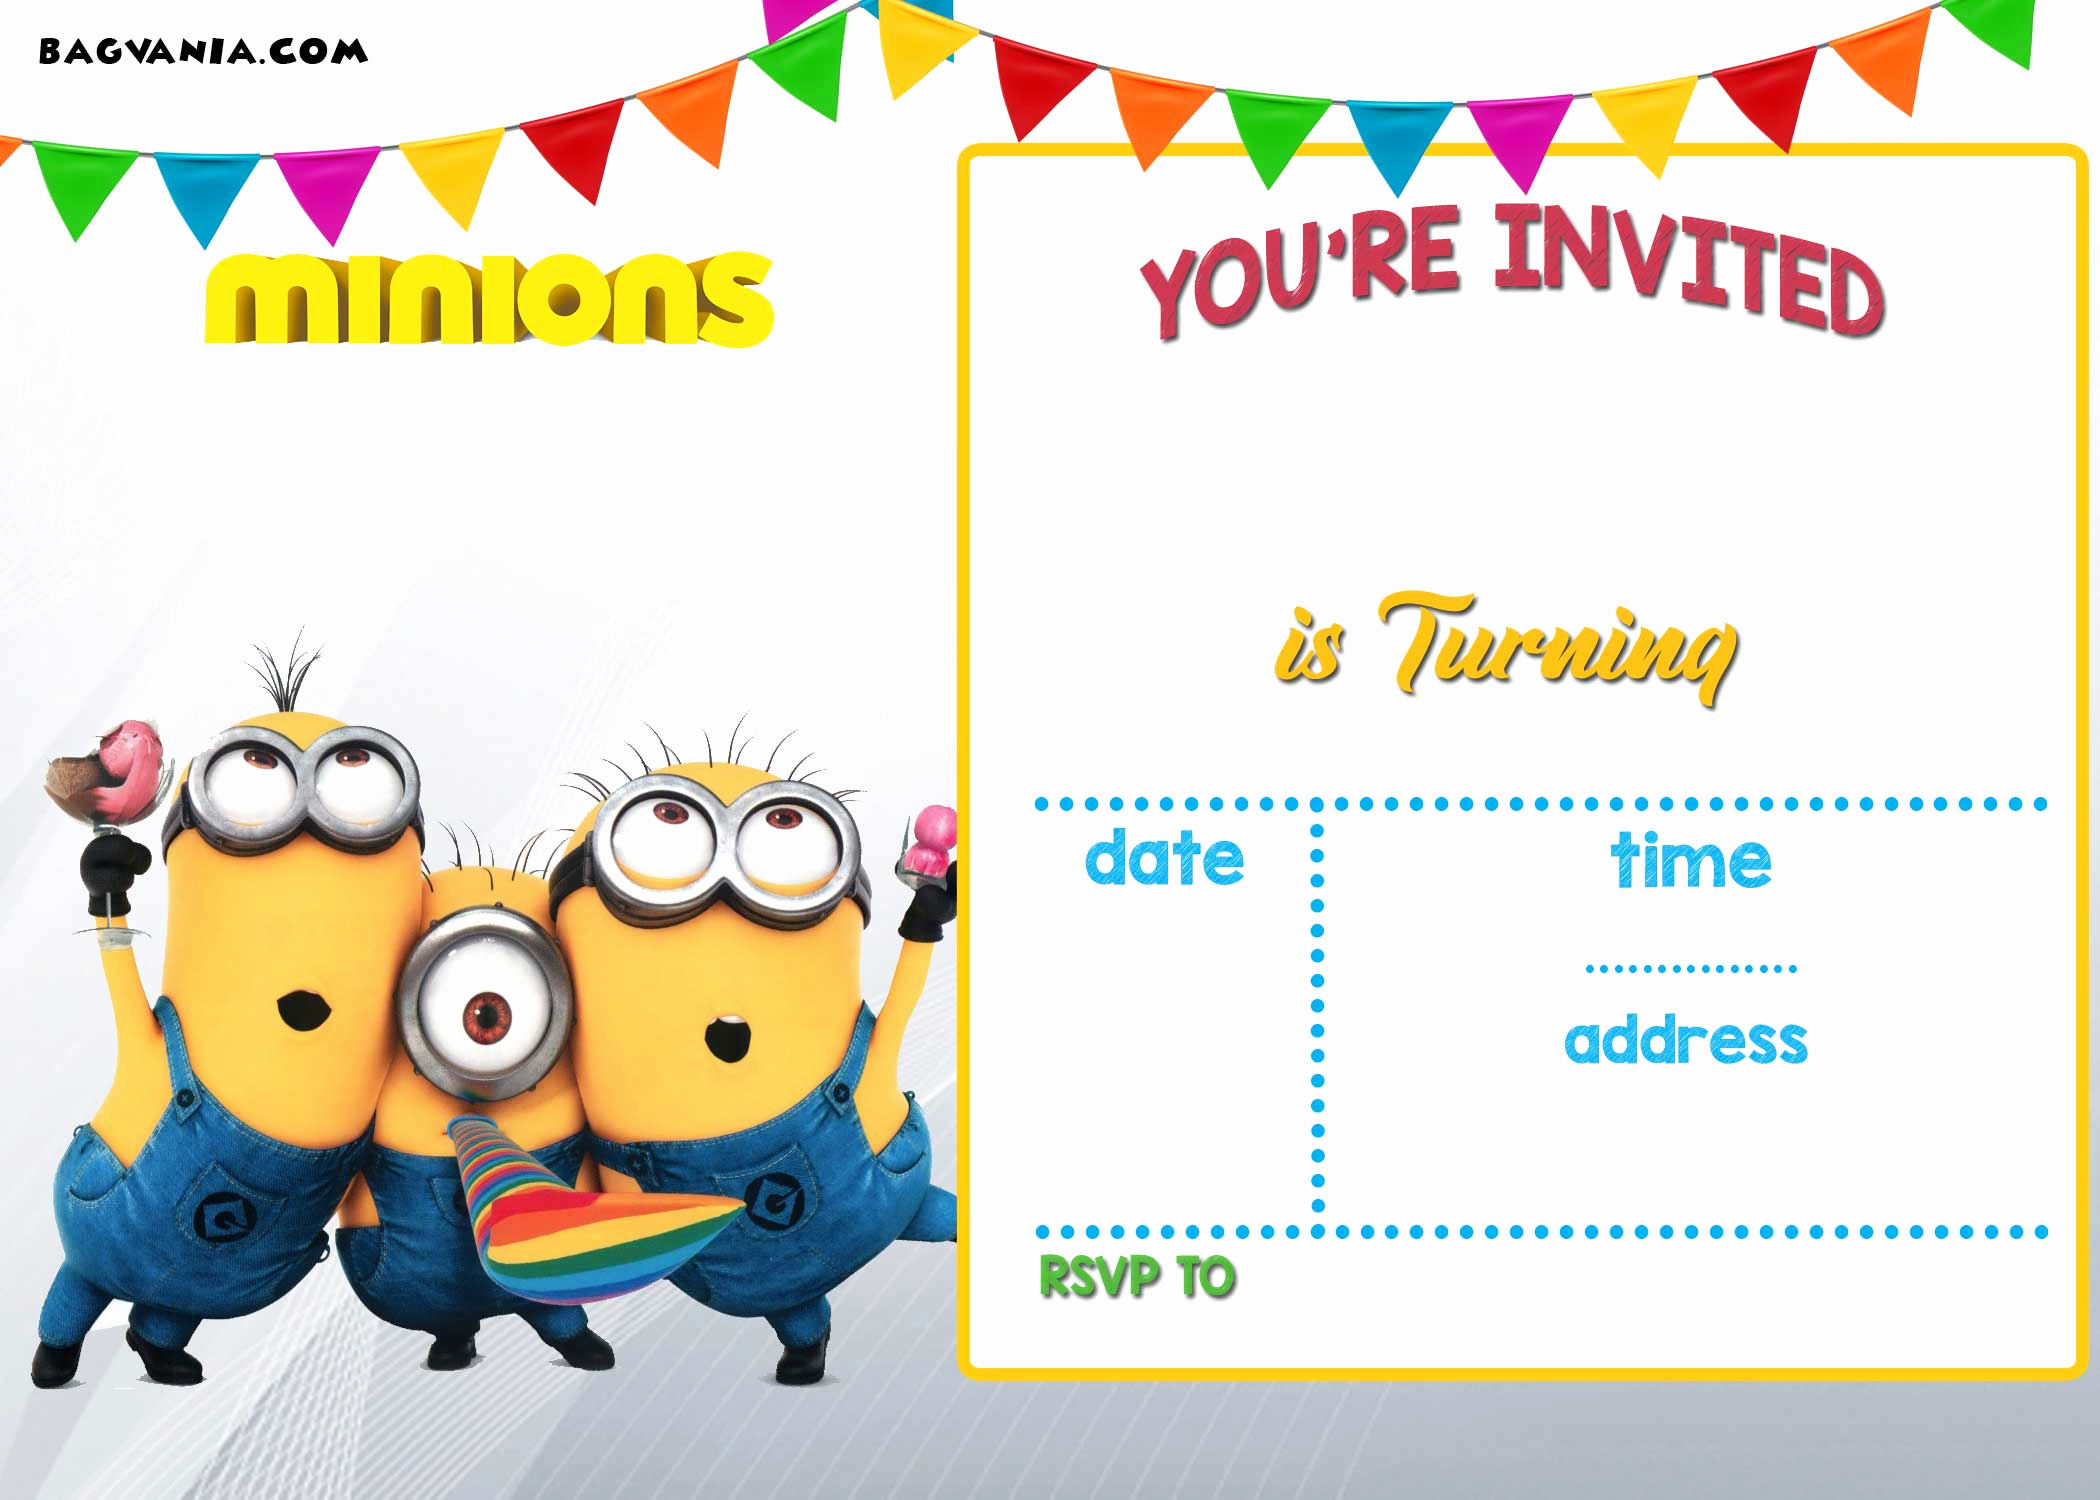 Minion Birthday Party Invitation Awesome Free Printable Minion Birthday Party Invitations Ideas